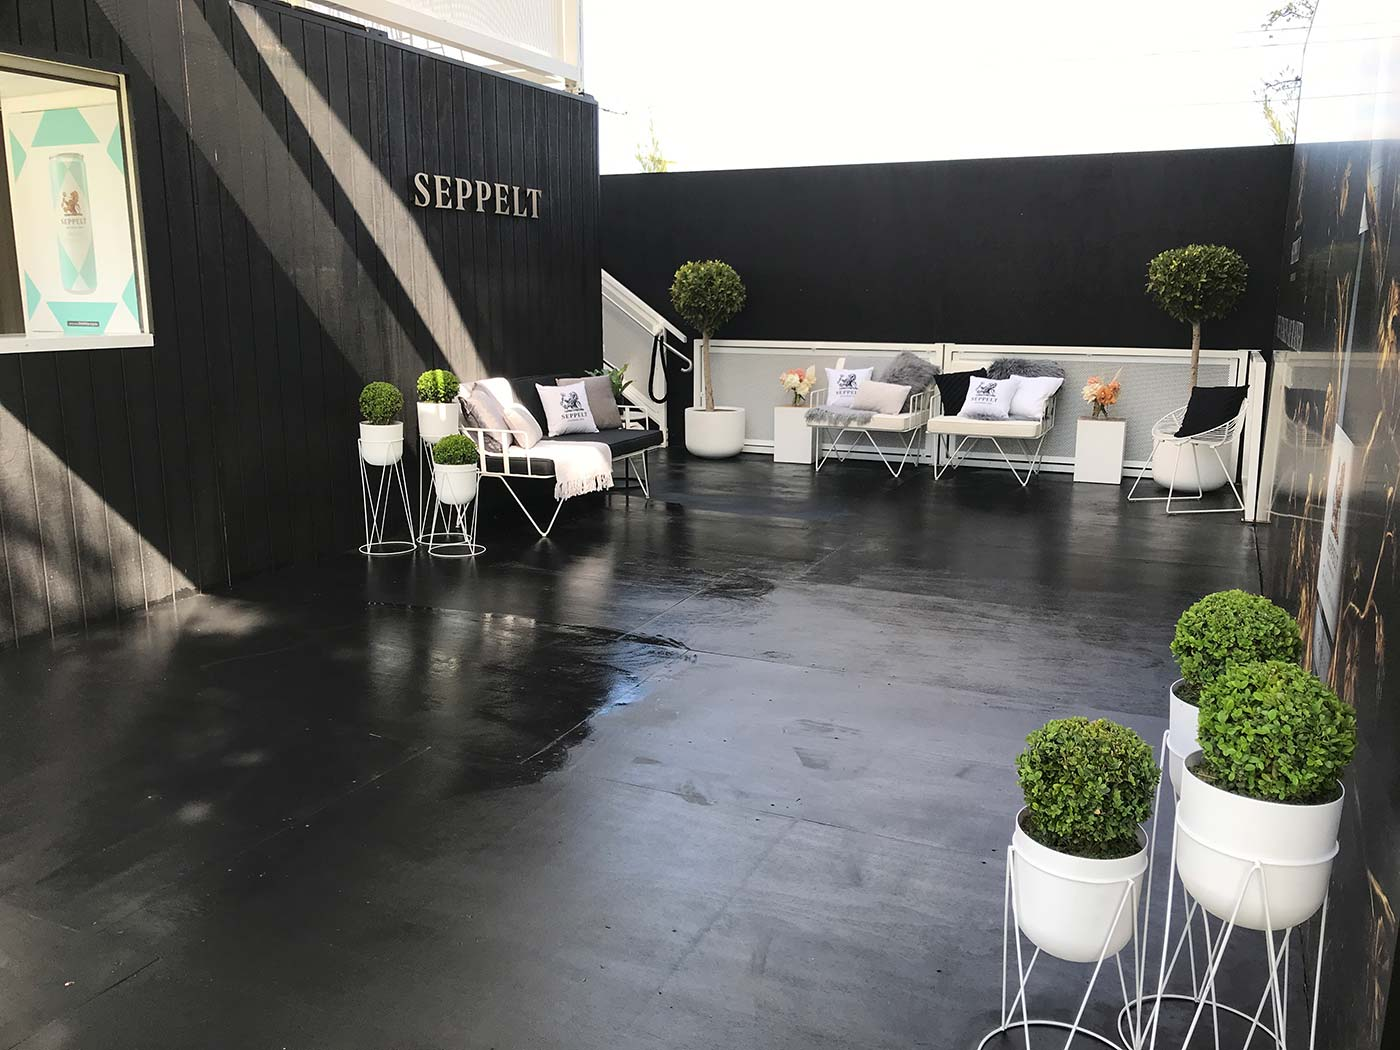 Seppelt-Terrace-Shipping-Container-Hospitality-Conversion-5